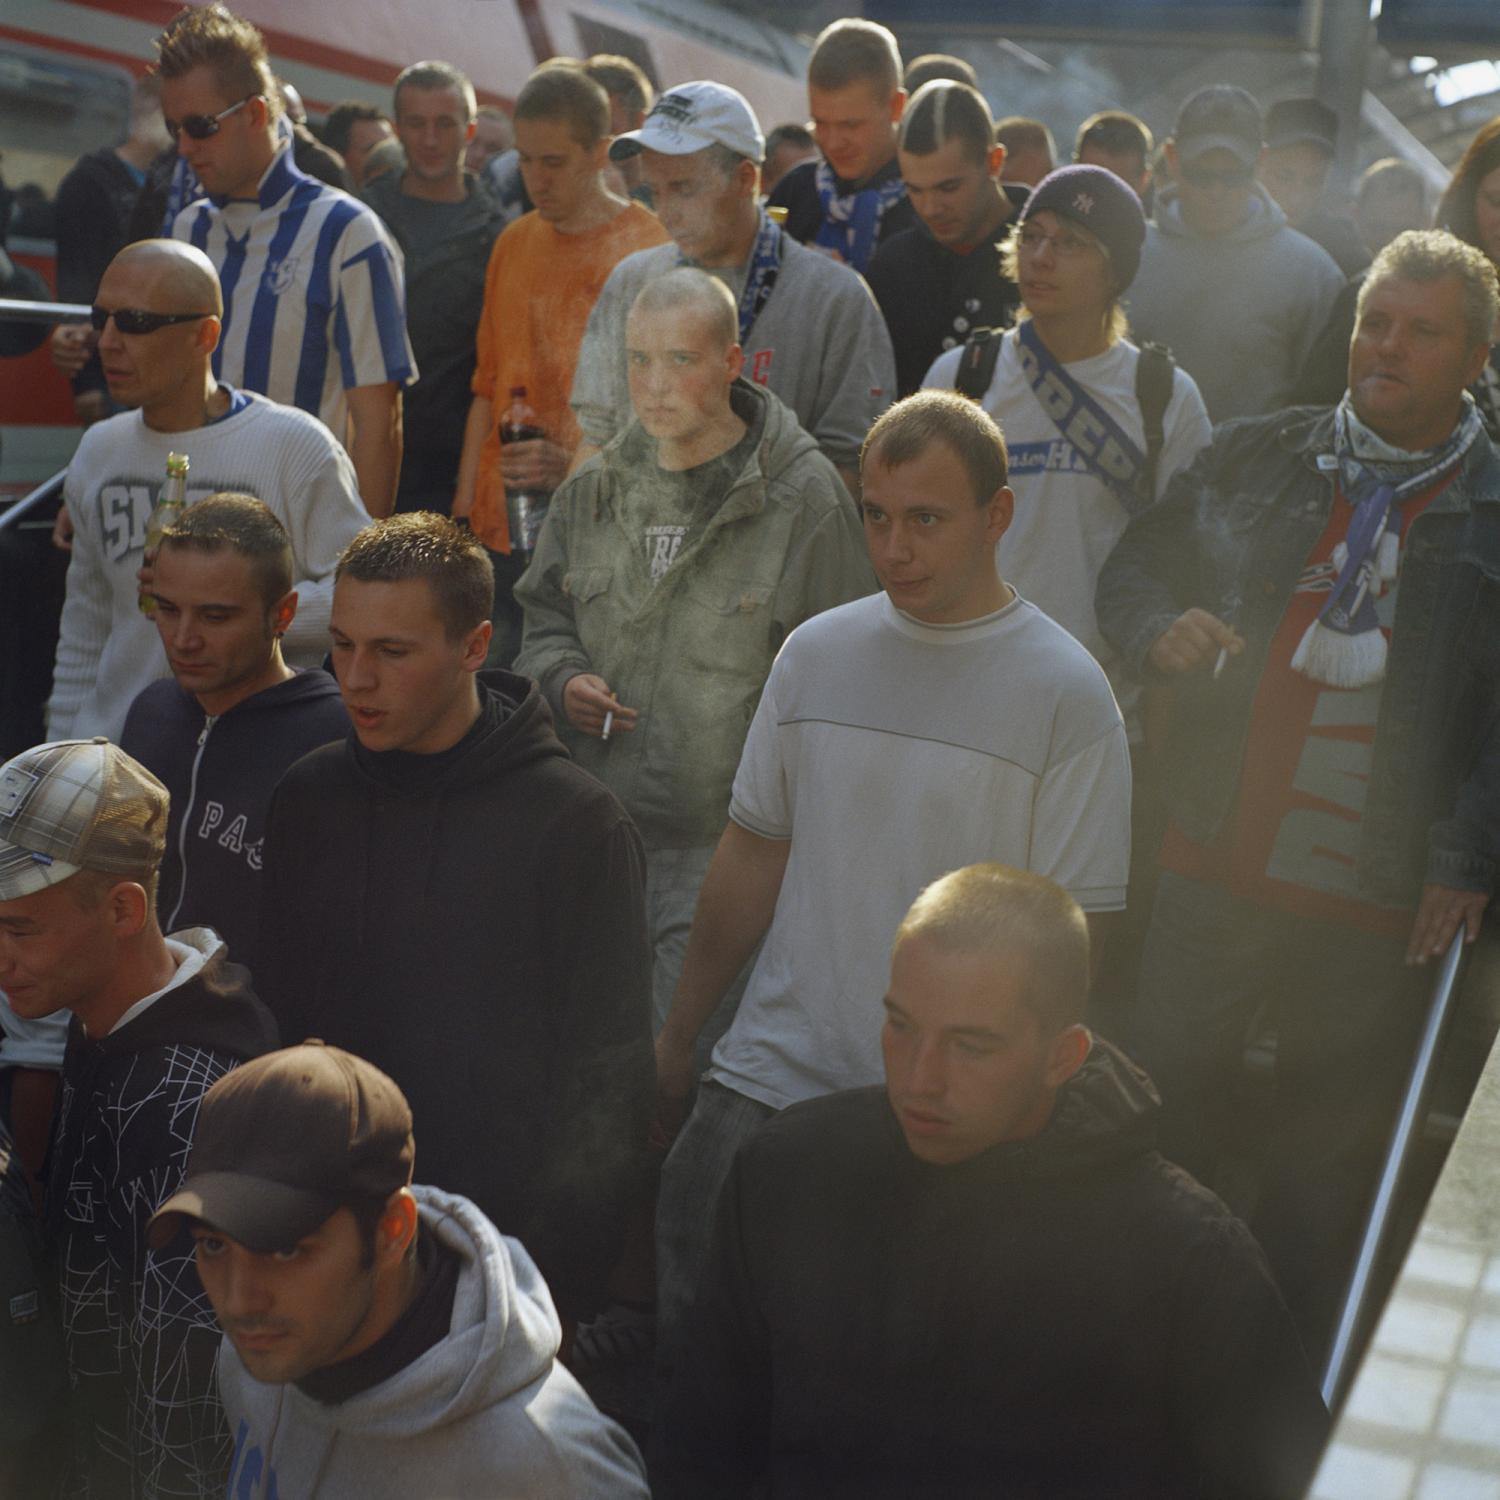 Supporters from Magdeburg arrive at the Halle train station of Halle for the big derby against the rival Halle FC.